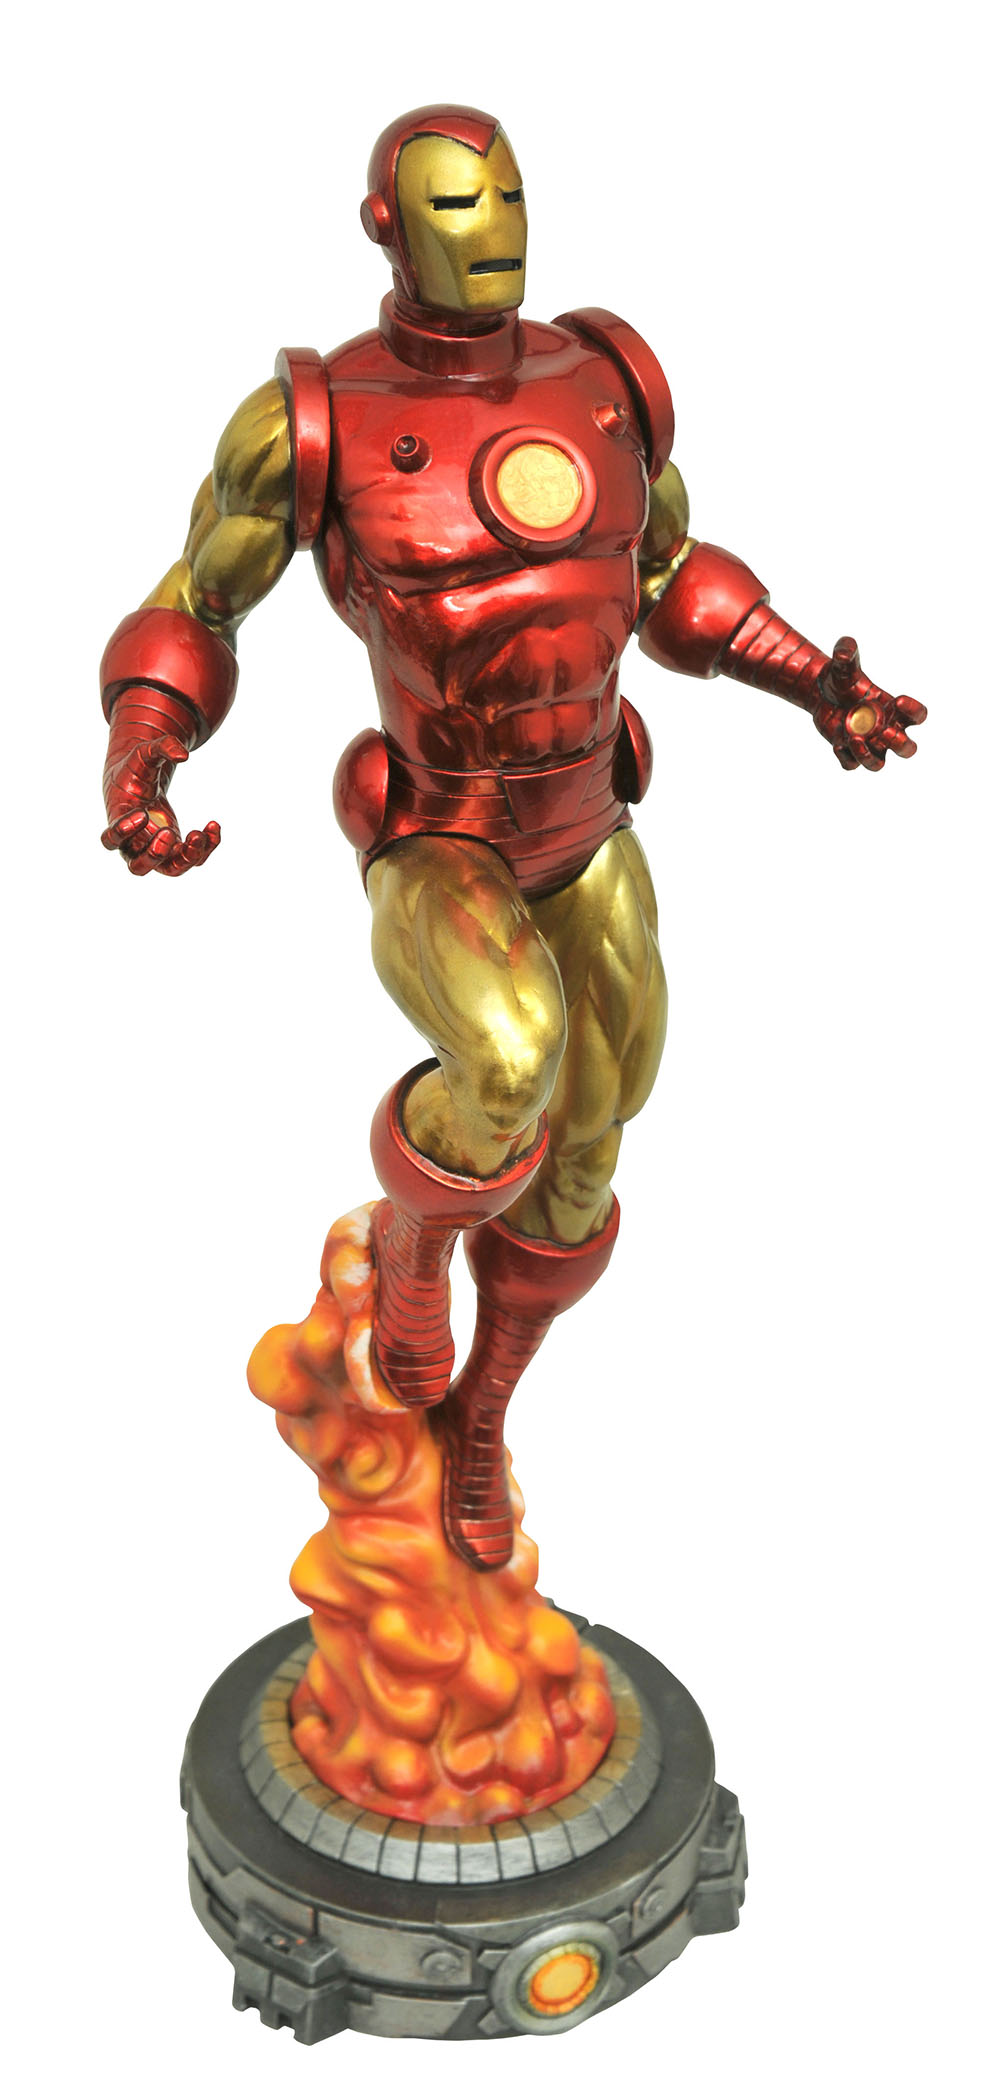 MARVEL GALLERY CLASSIC IRON MAN PVC FIGURE